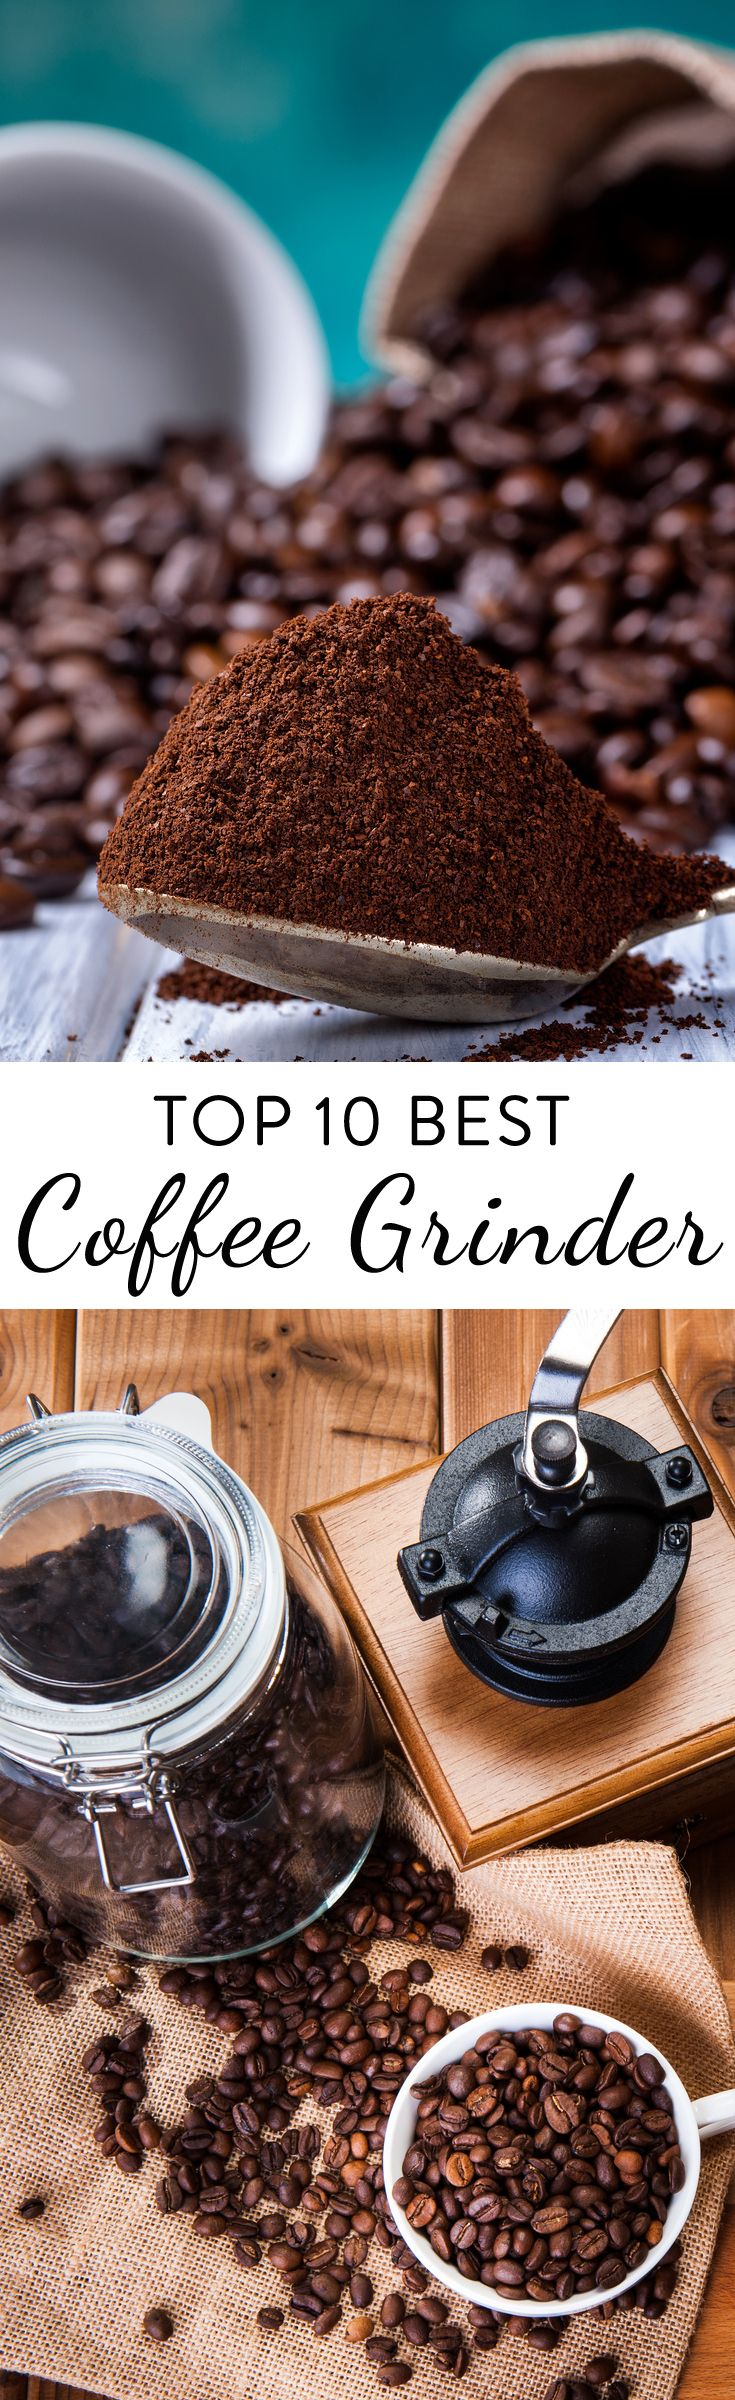 The 10 Best Coffee Grinders Best coffee grinder, Coffee